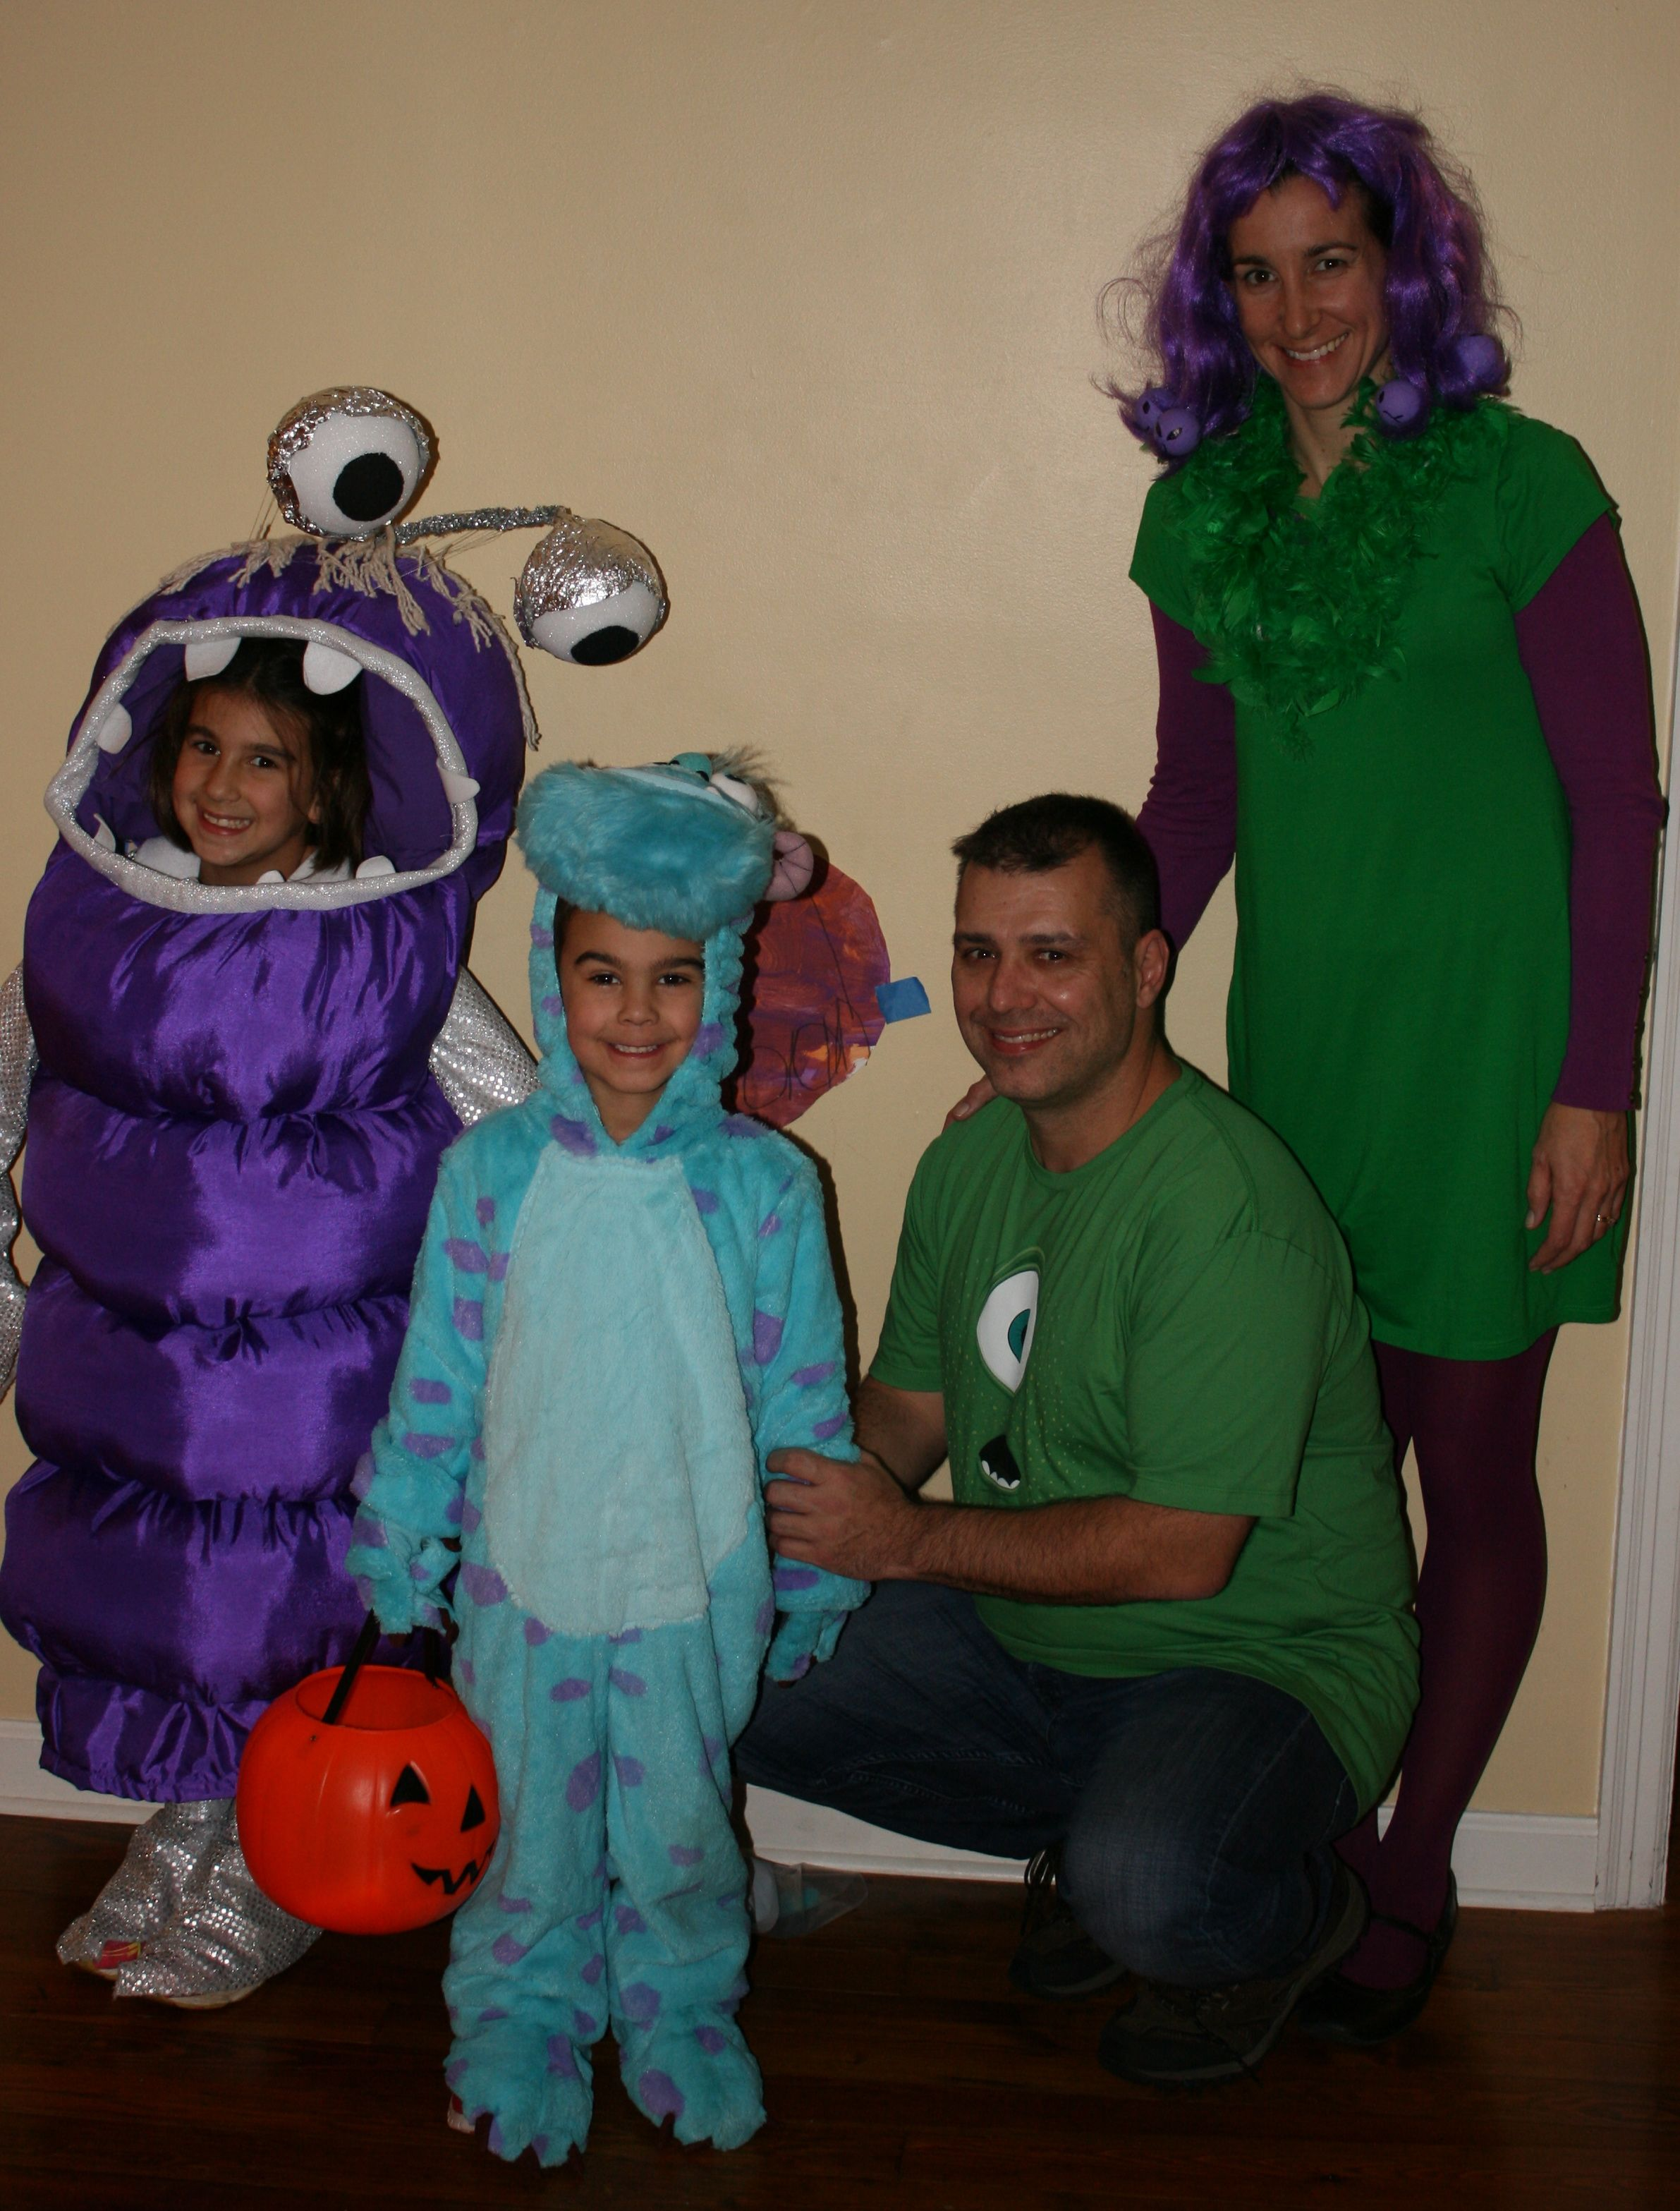 monsters inc halloween costume boo sully celia mike - Monster Inc Halloween Costumes Boo